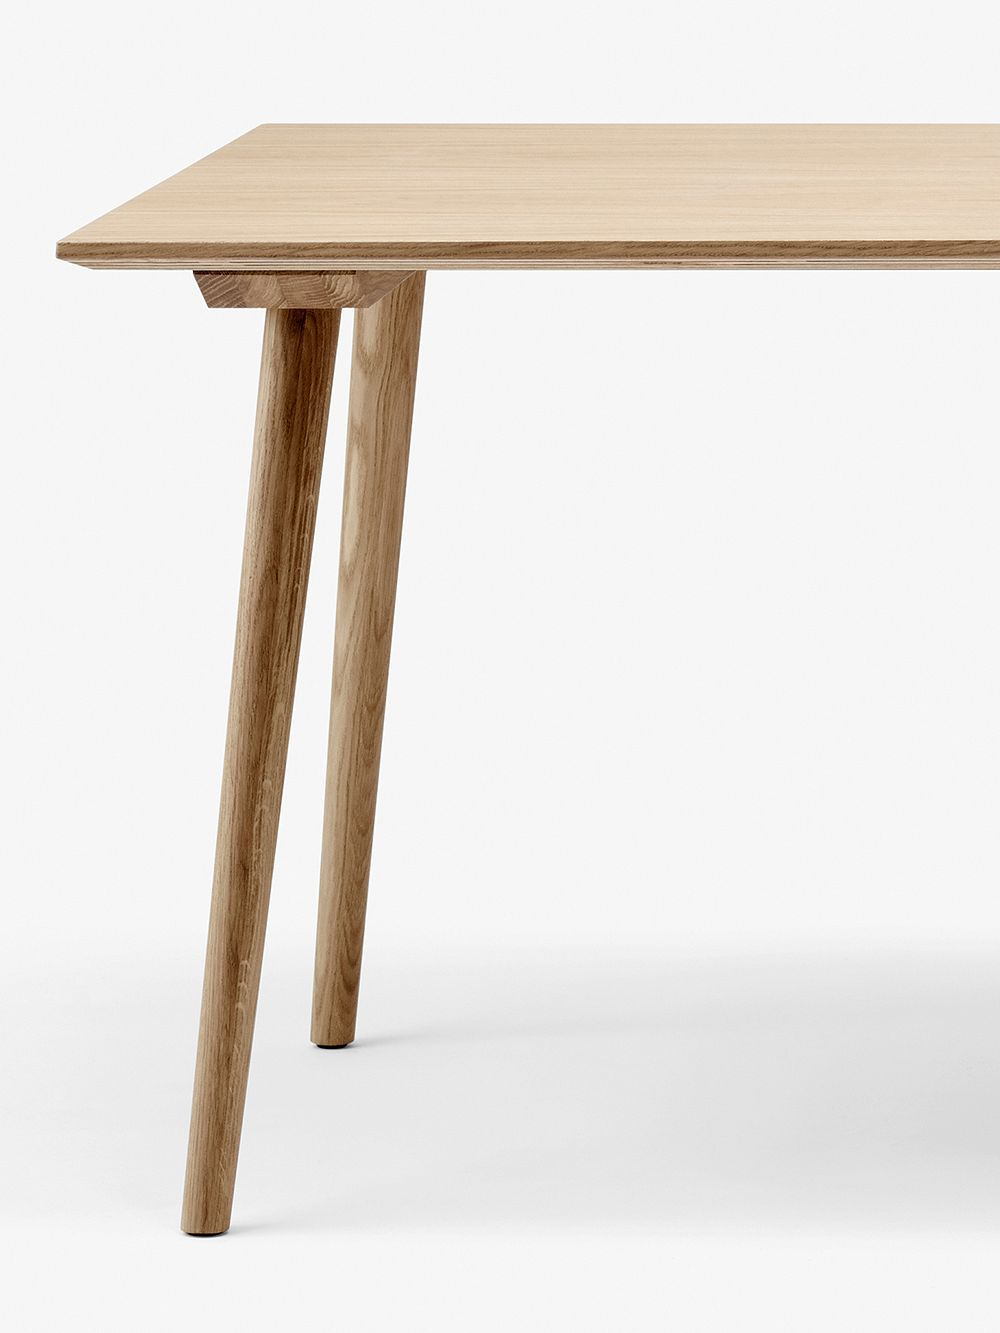 &Tradition In Between SK5 table 90x200 cm, lacquered oak